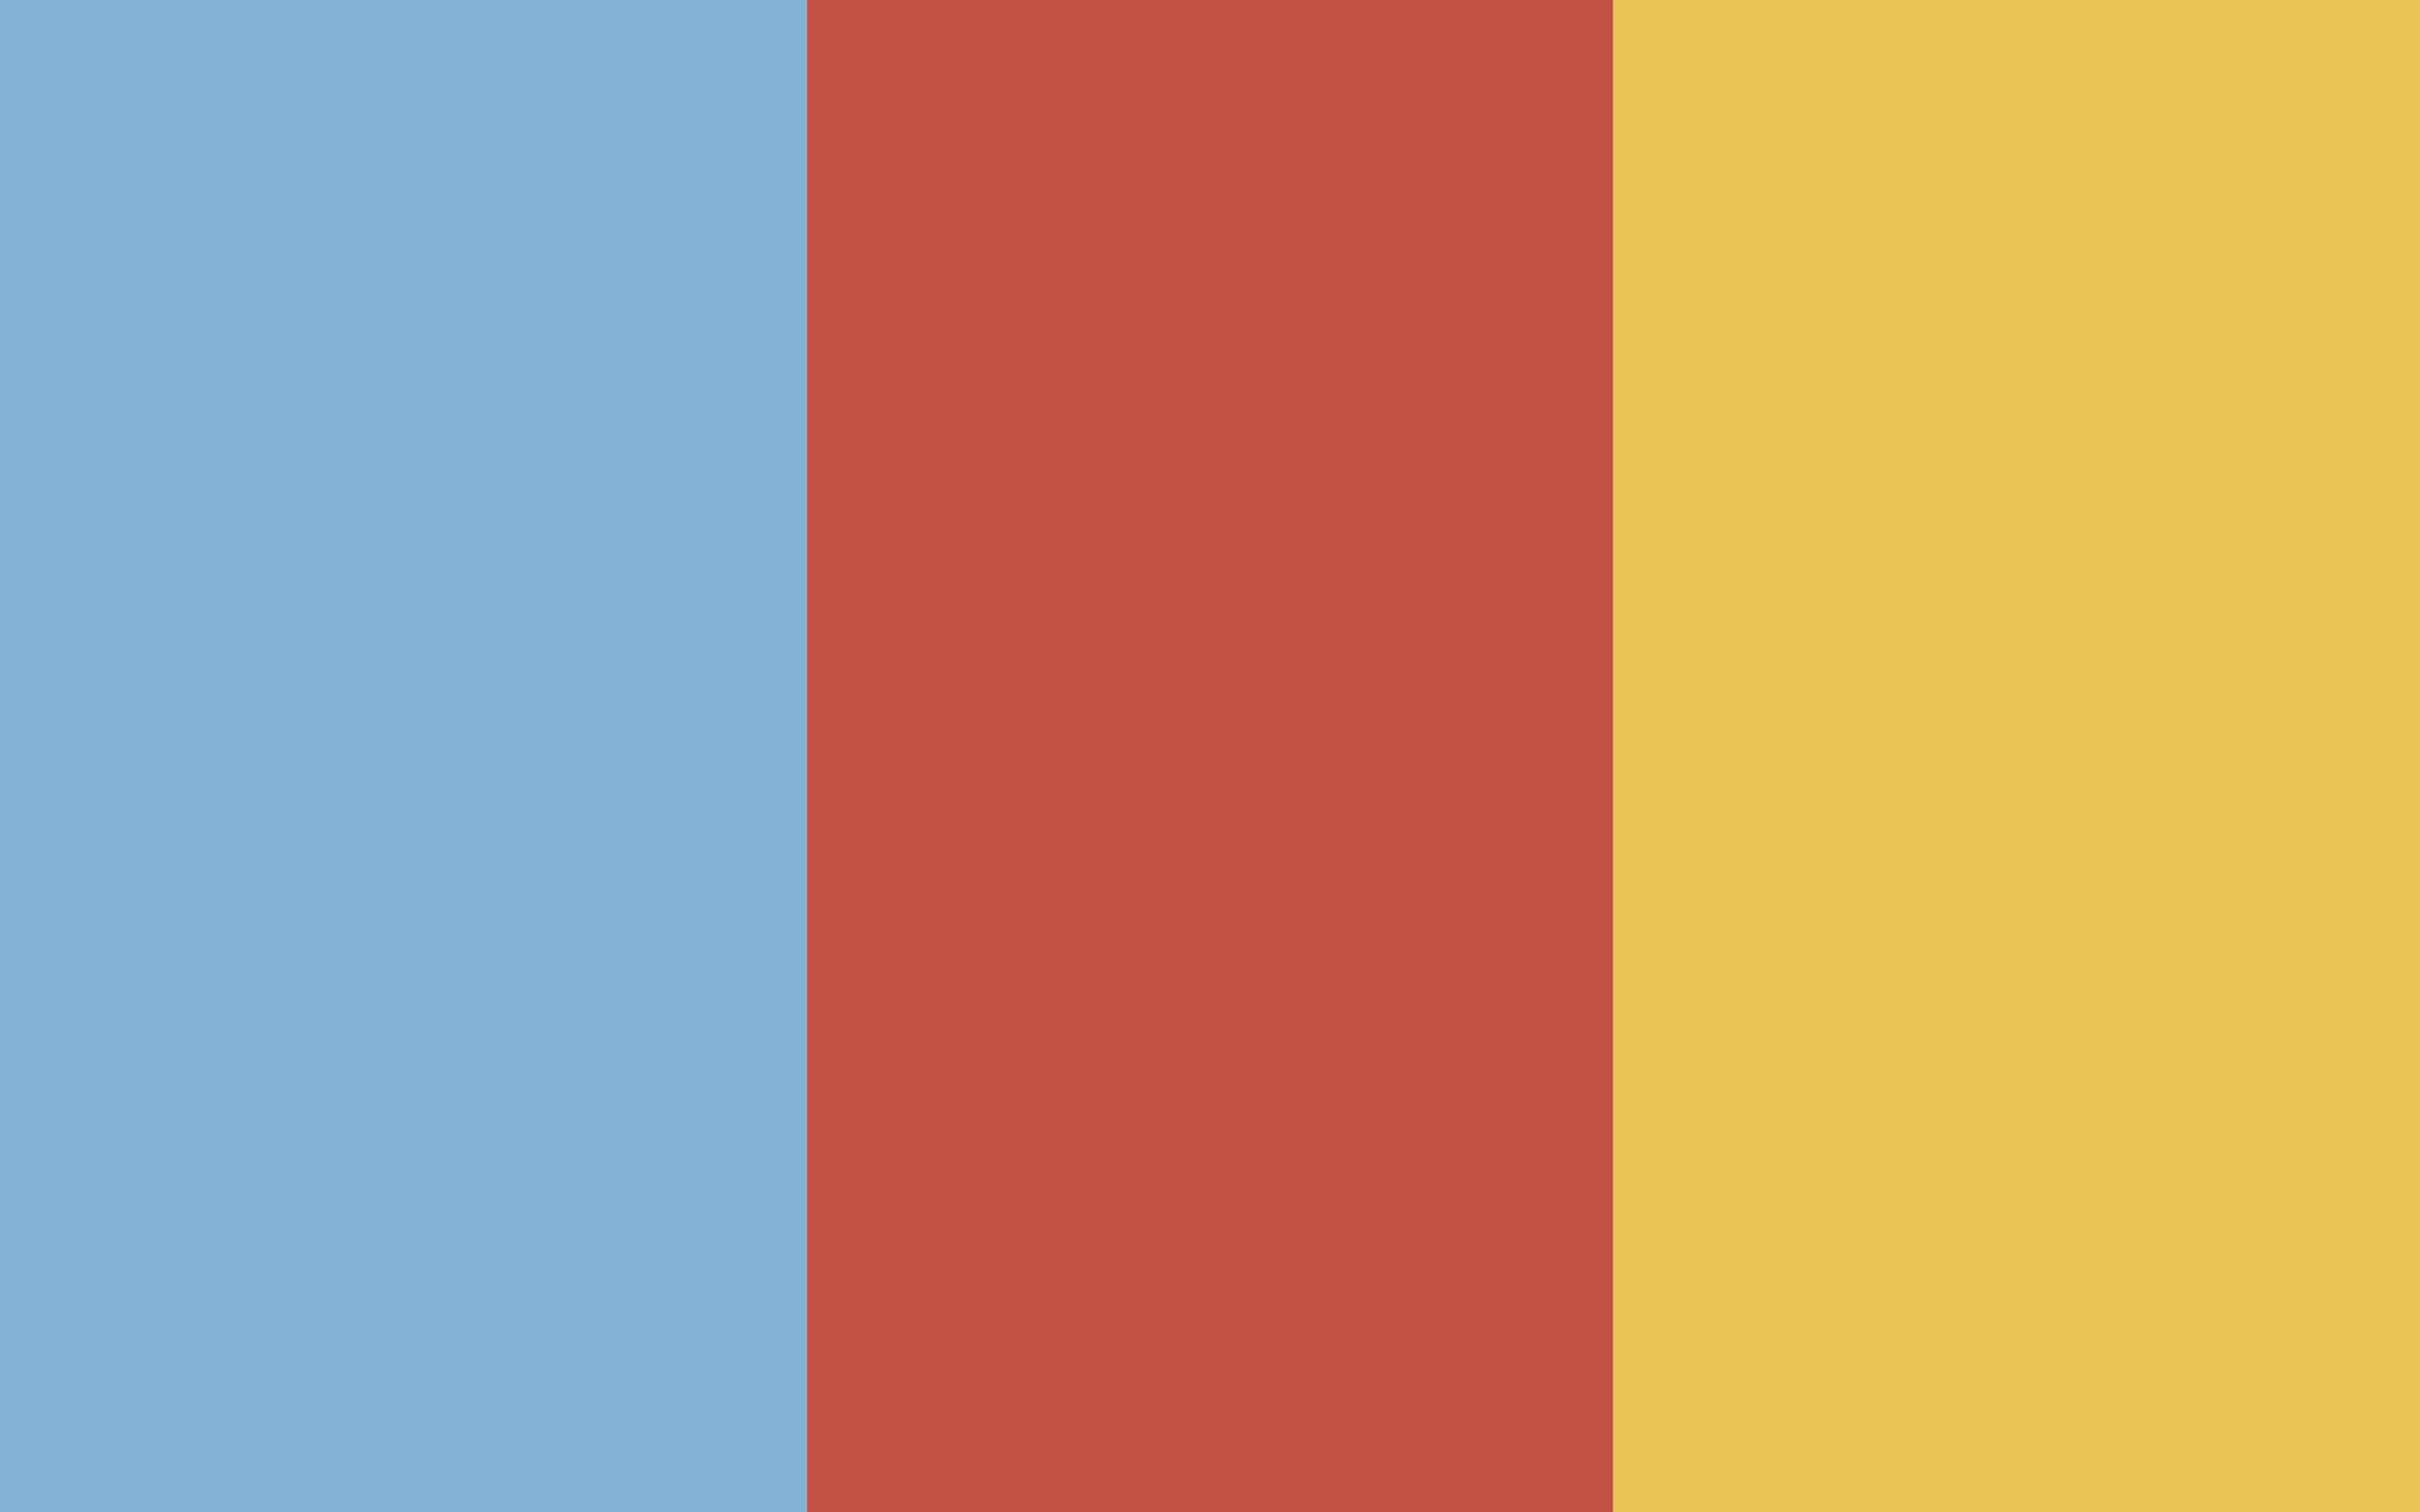 Three colors: Dolphin Blue, Grandmaster Red, and Empathy Gold.